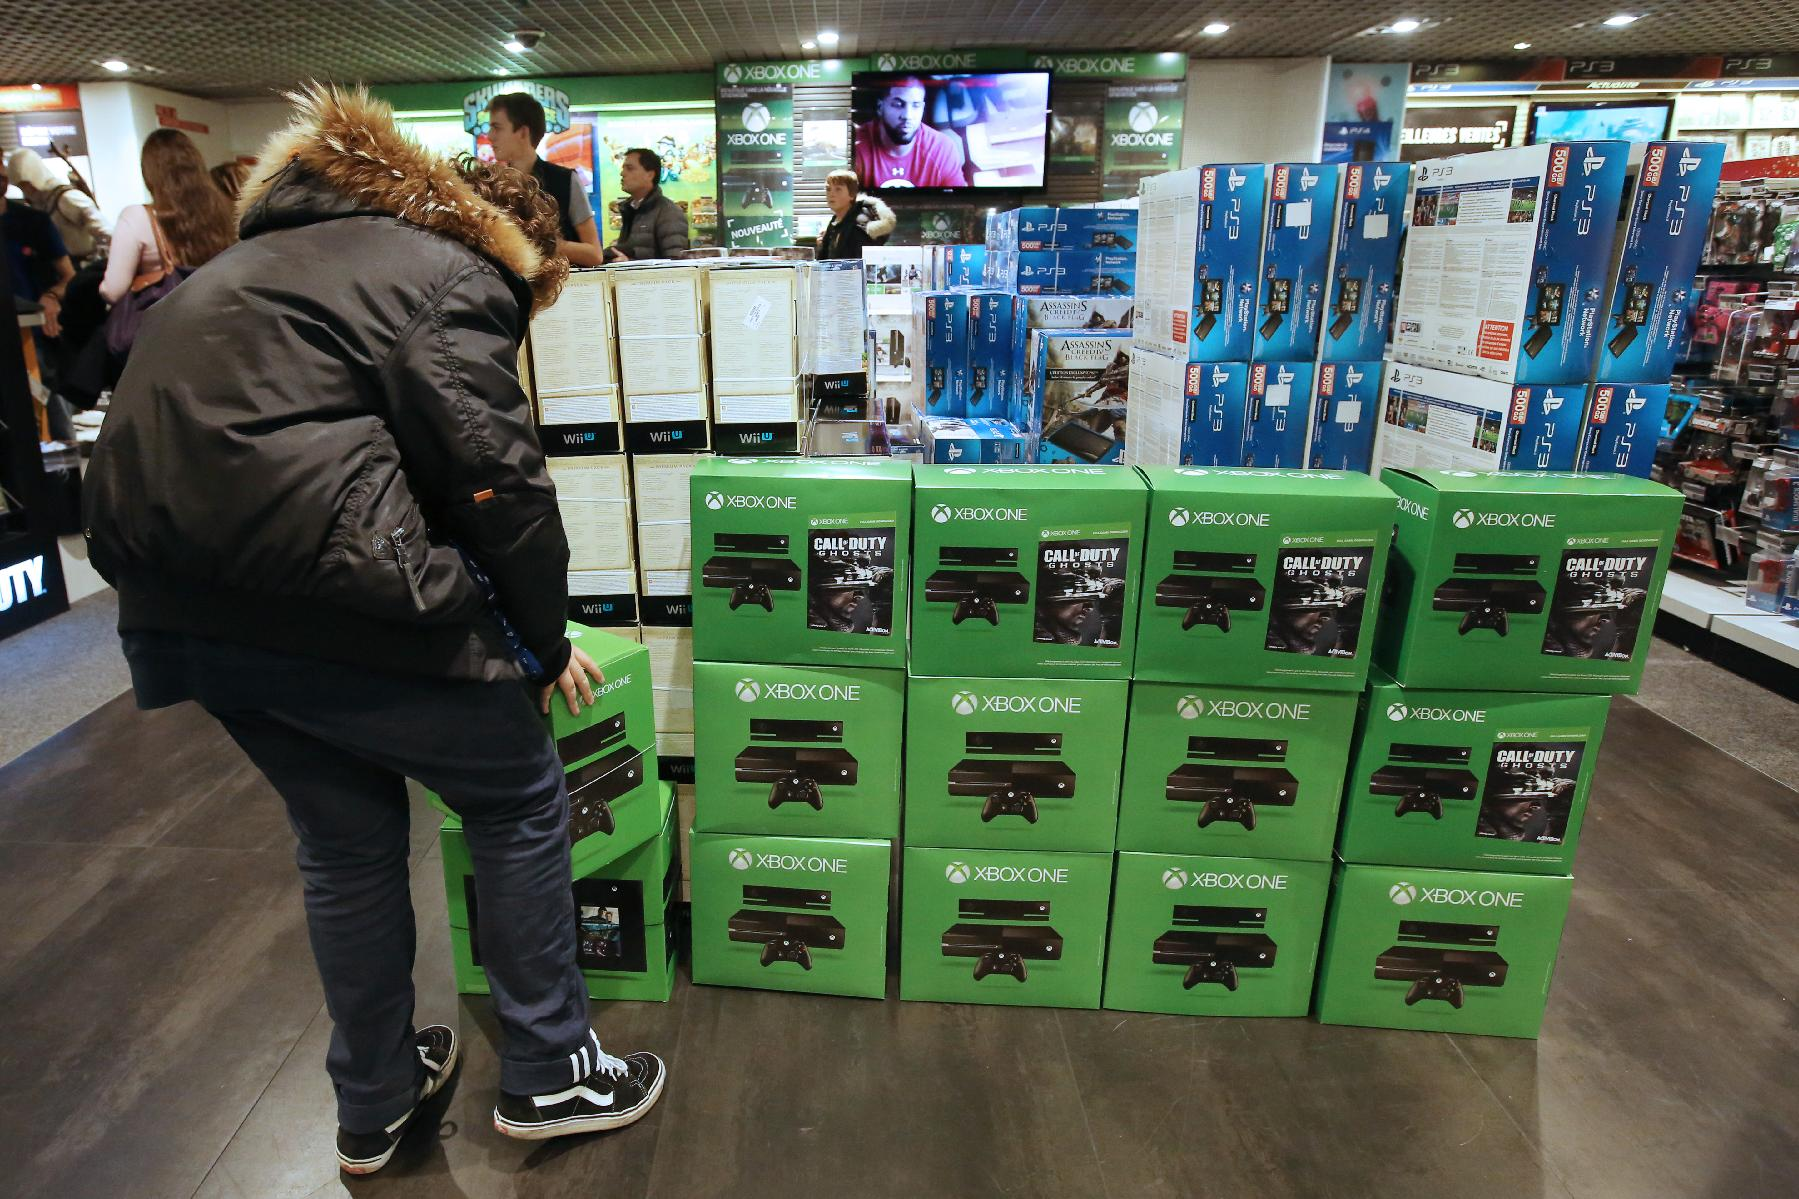 Microsoft reports strong sales of XBox One